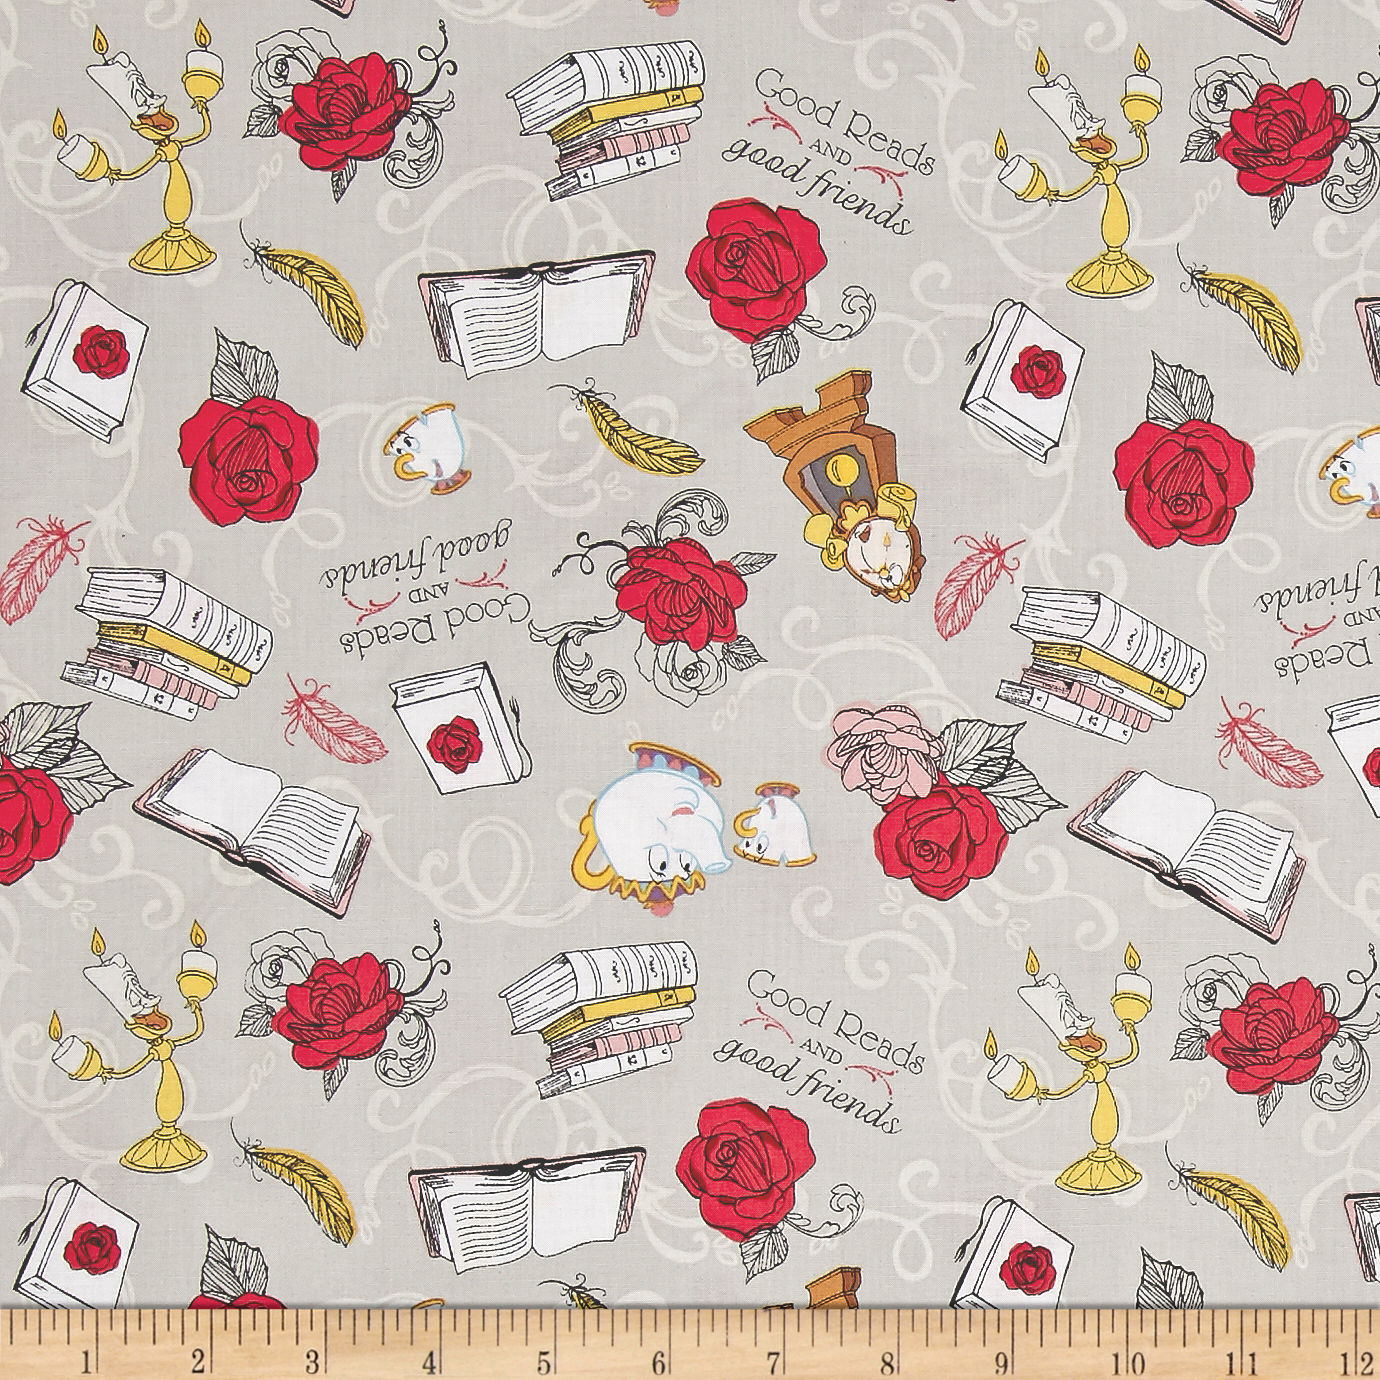 Disney Beauty and the Beast Friends Grey Fabric by Eugene in USA